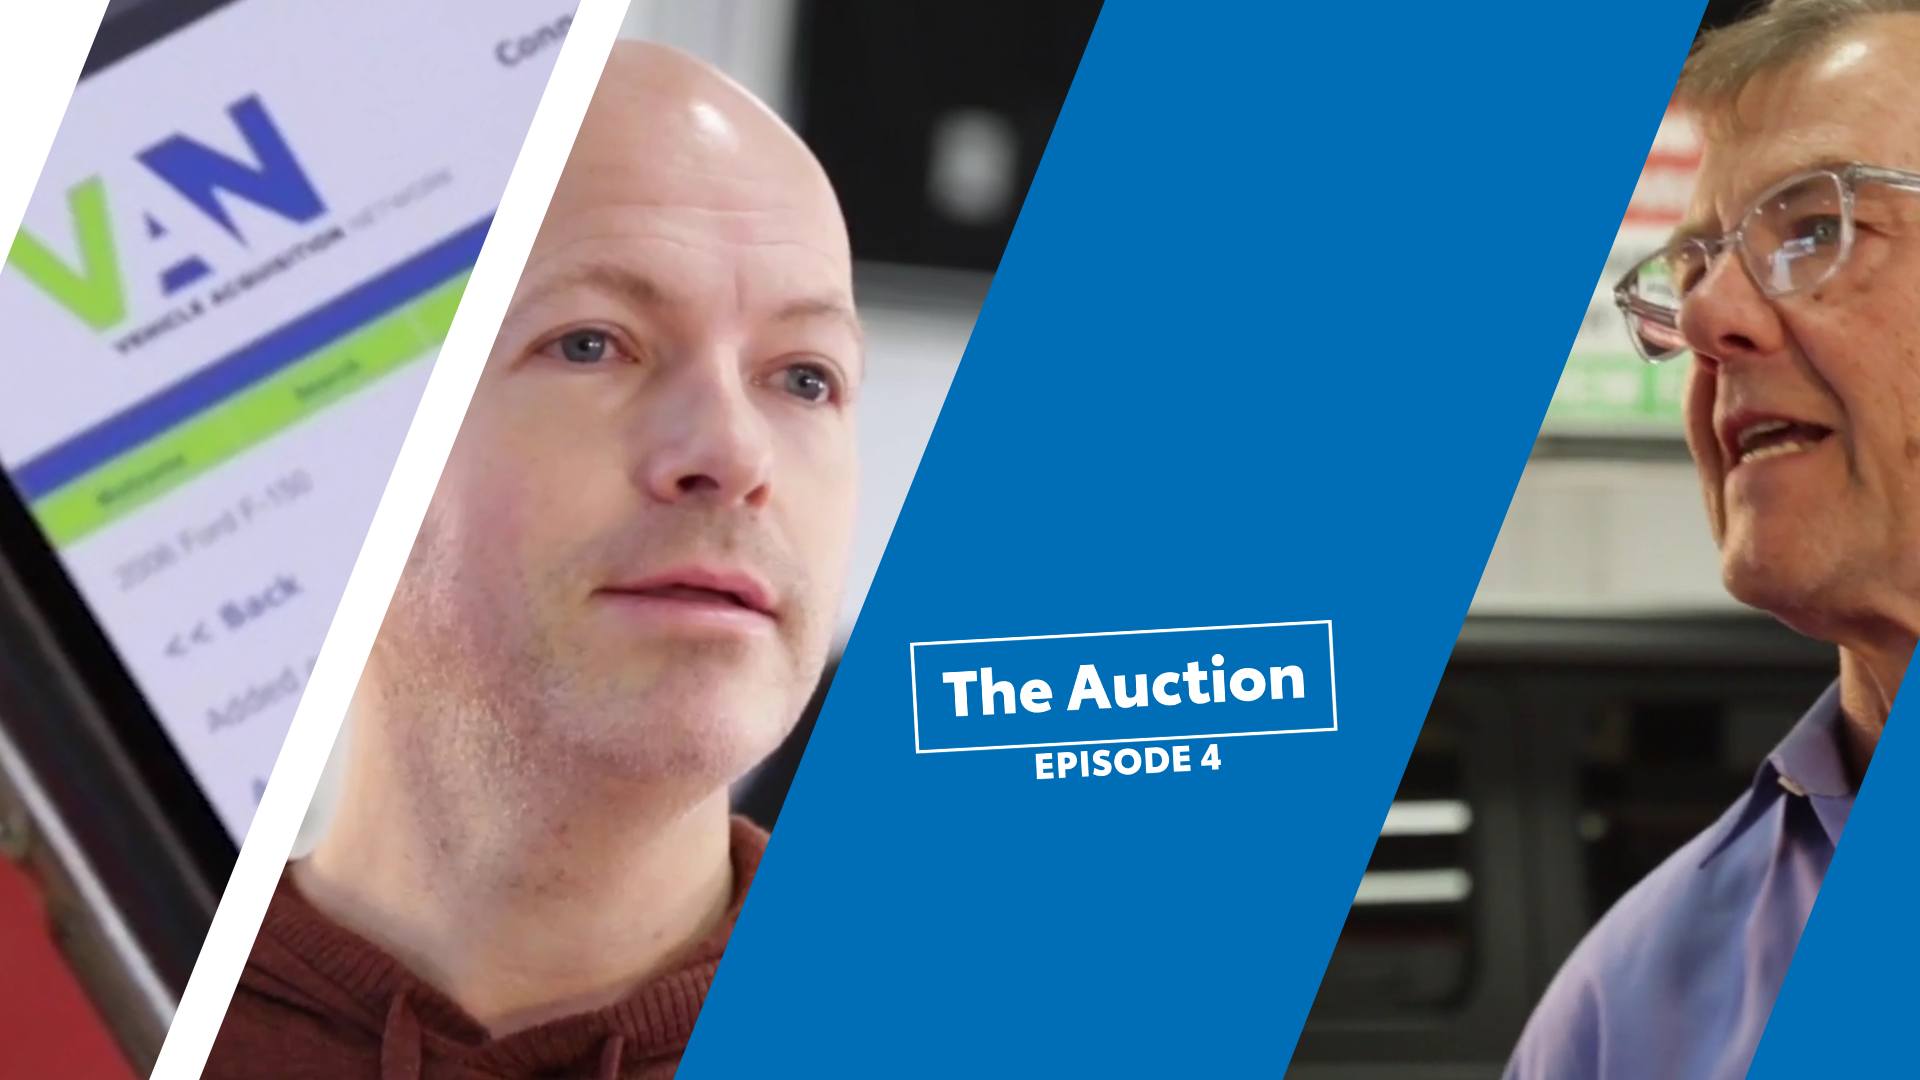 The Auction, Episode 4. The Overbidder